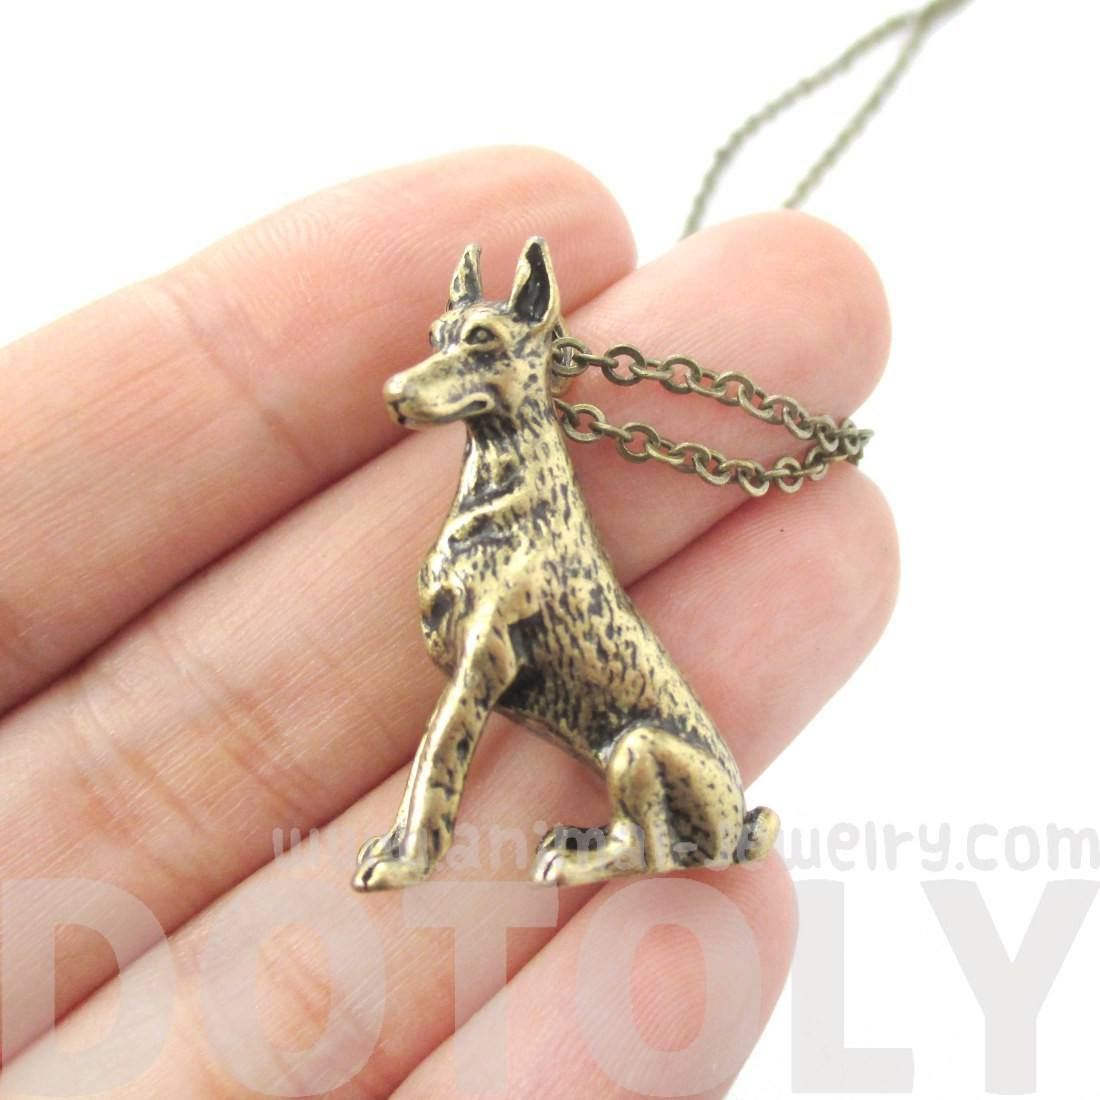 Realistic Doberman Pinscher Puppy Dog Shaped Pendant Necklace in Brass